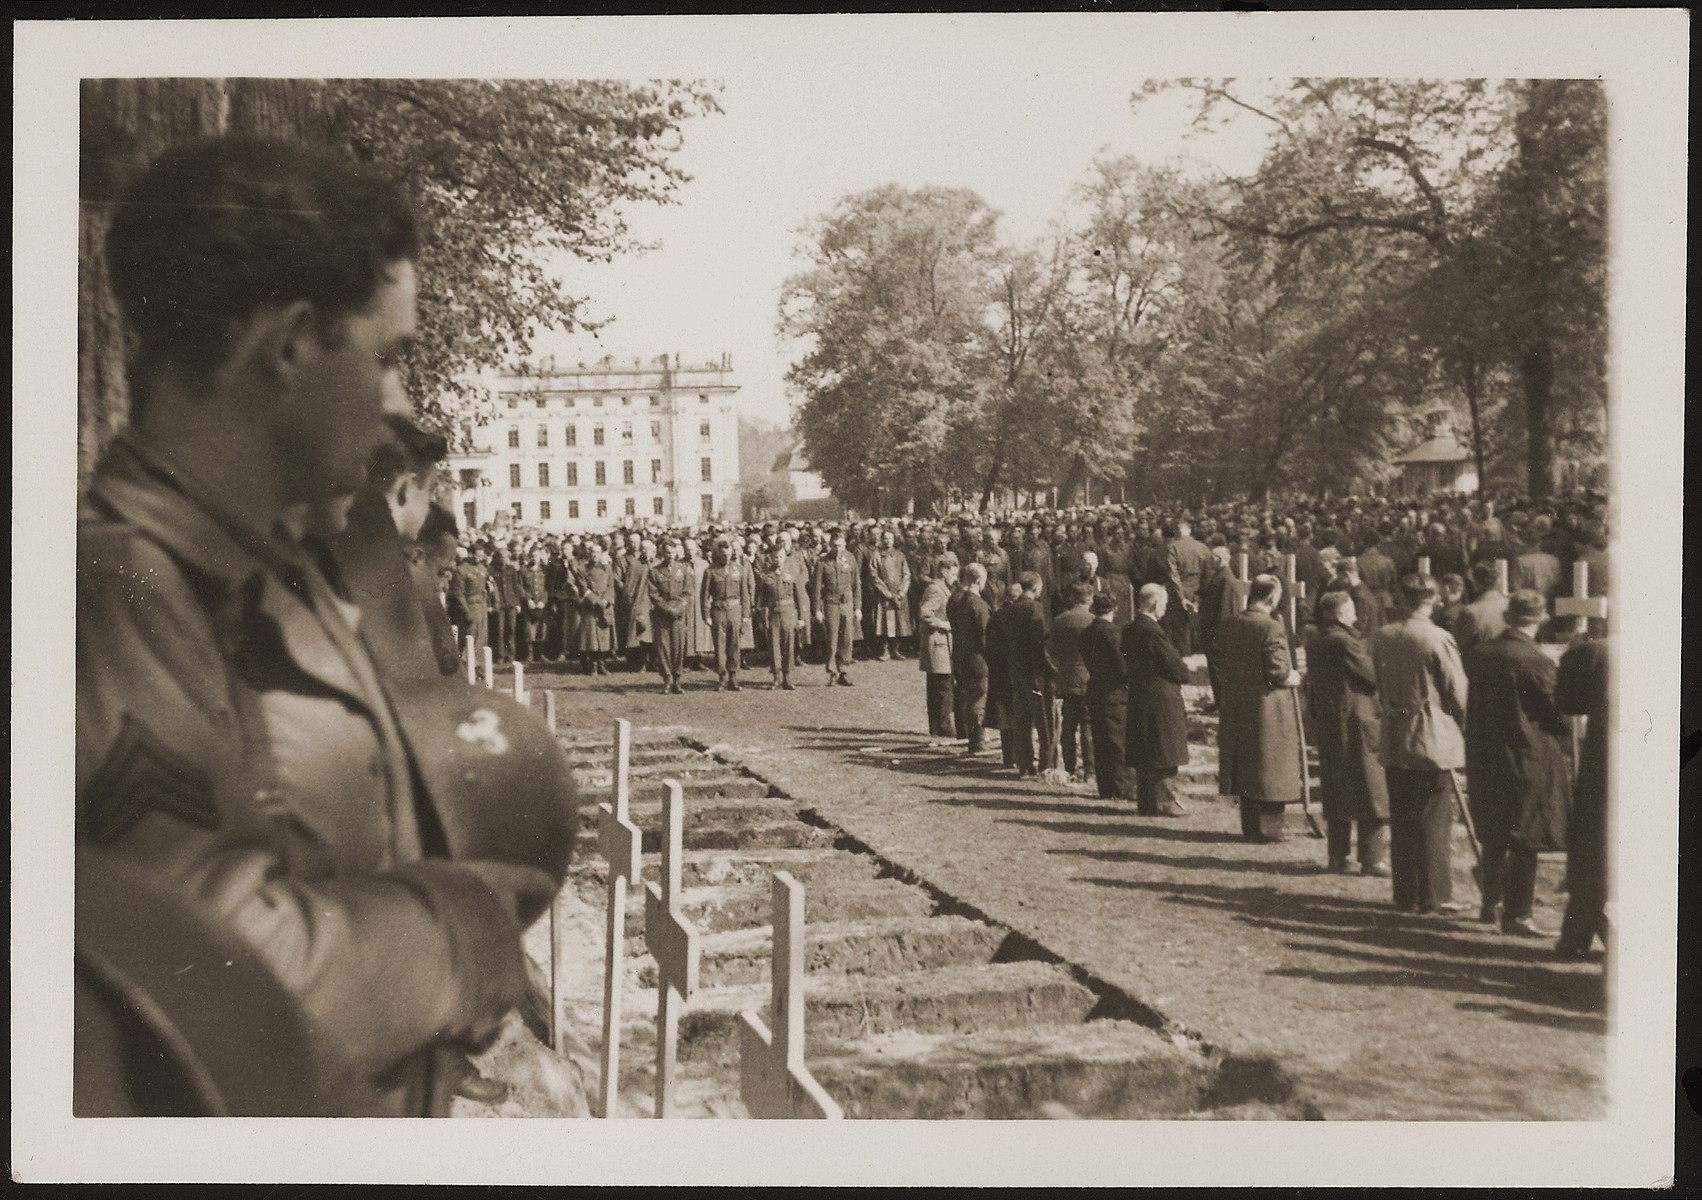 German civilians from Ludwigslust pause for a moment of silence at the mass funeral on the palace grounds of the Archduke of Mecklenburg, where they were forced by U.S. troops to bury the corpses of prisoners killed in the Woebbelin concentration camp.  The ram insignia on the helmet of the American soldier in the foreground indicates that he was a member of the 348th Engineer Combat Battalion.